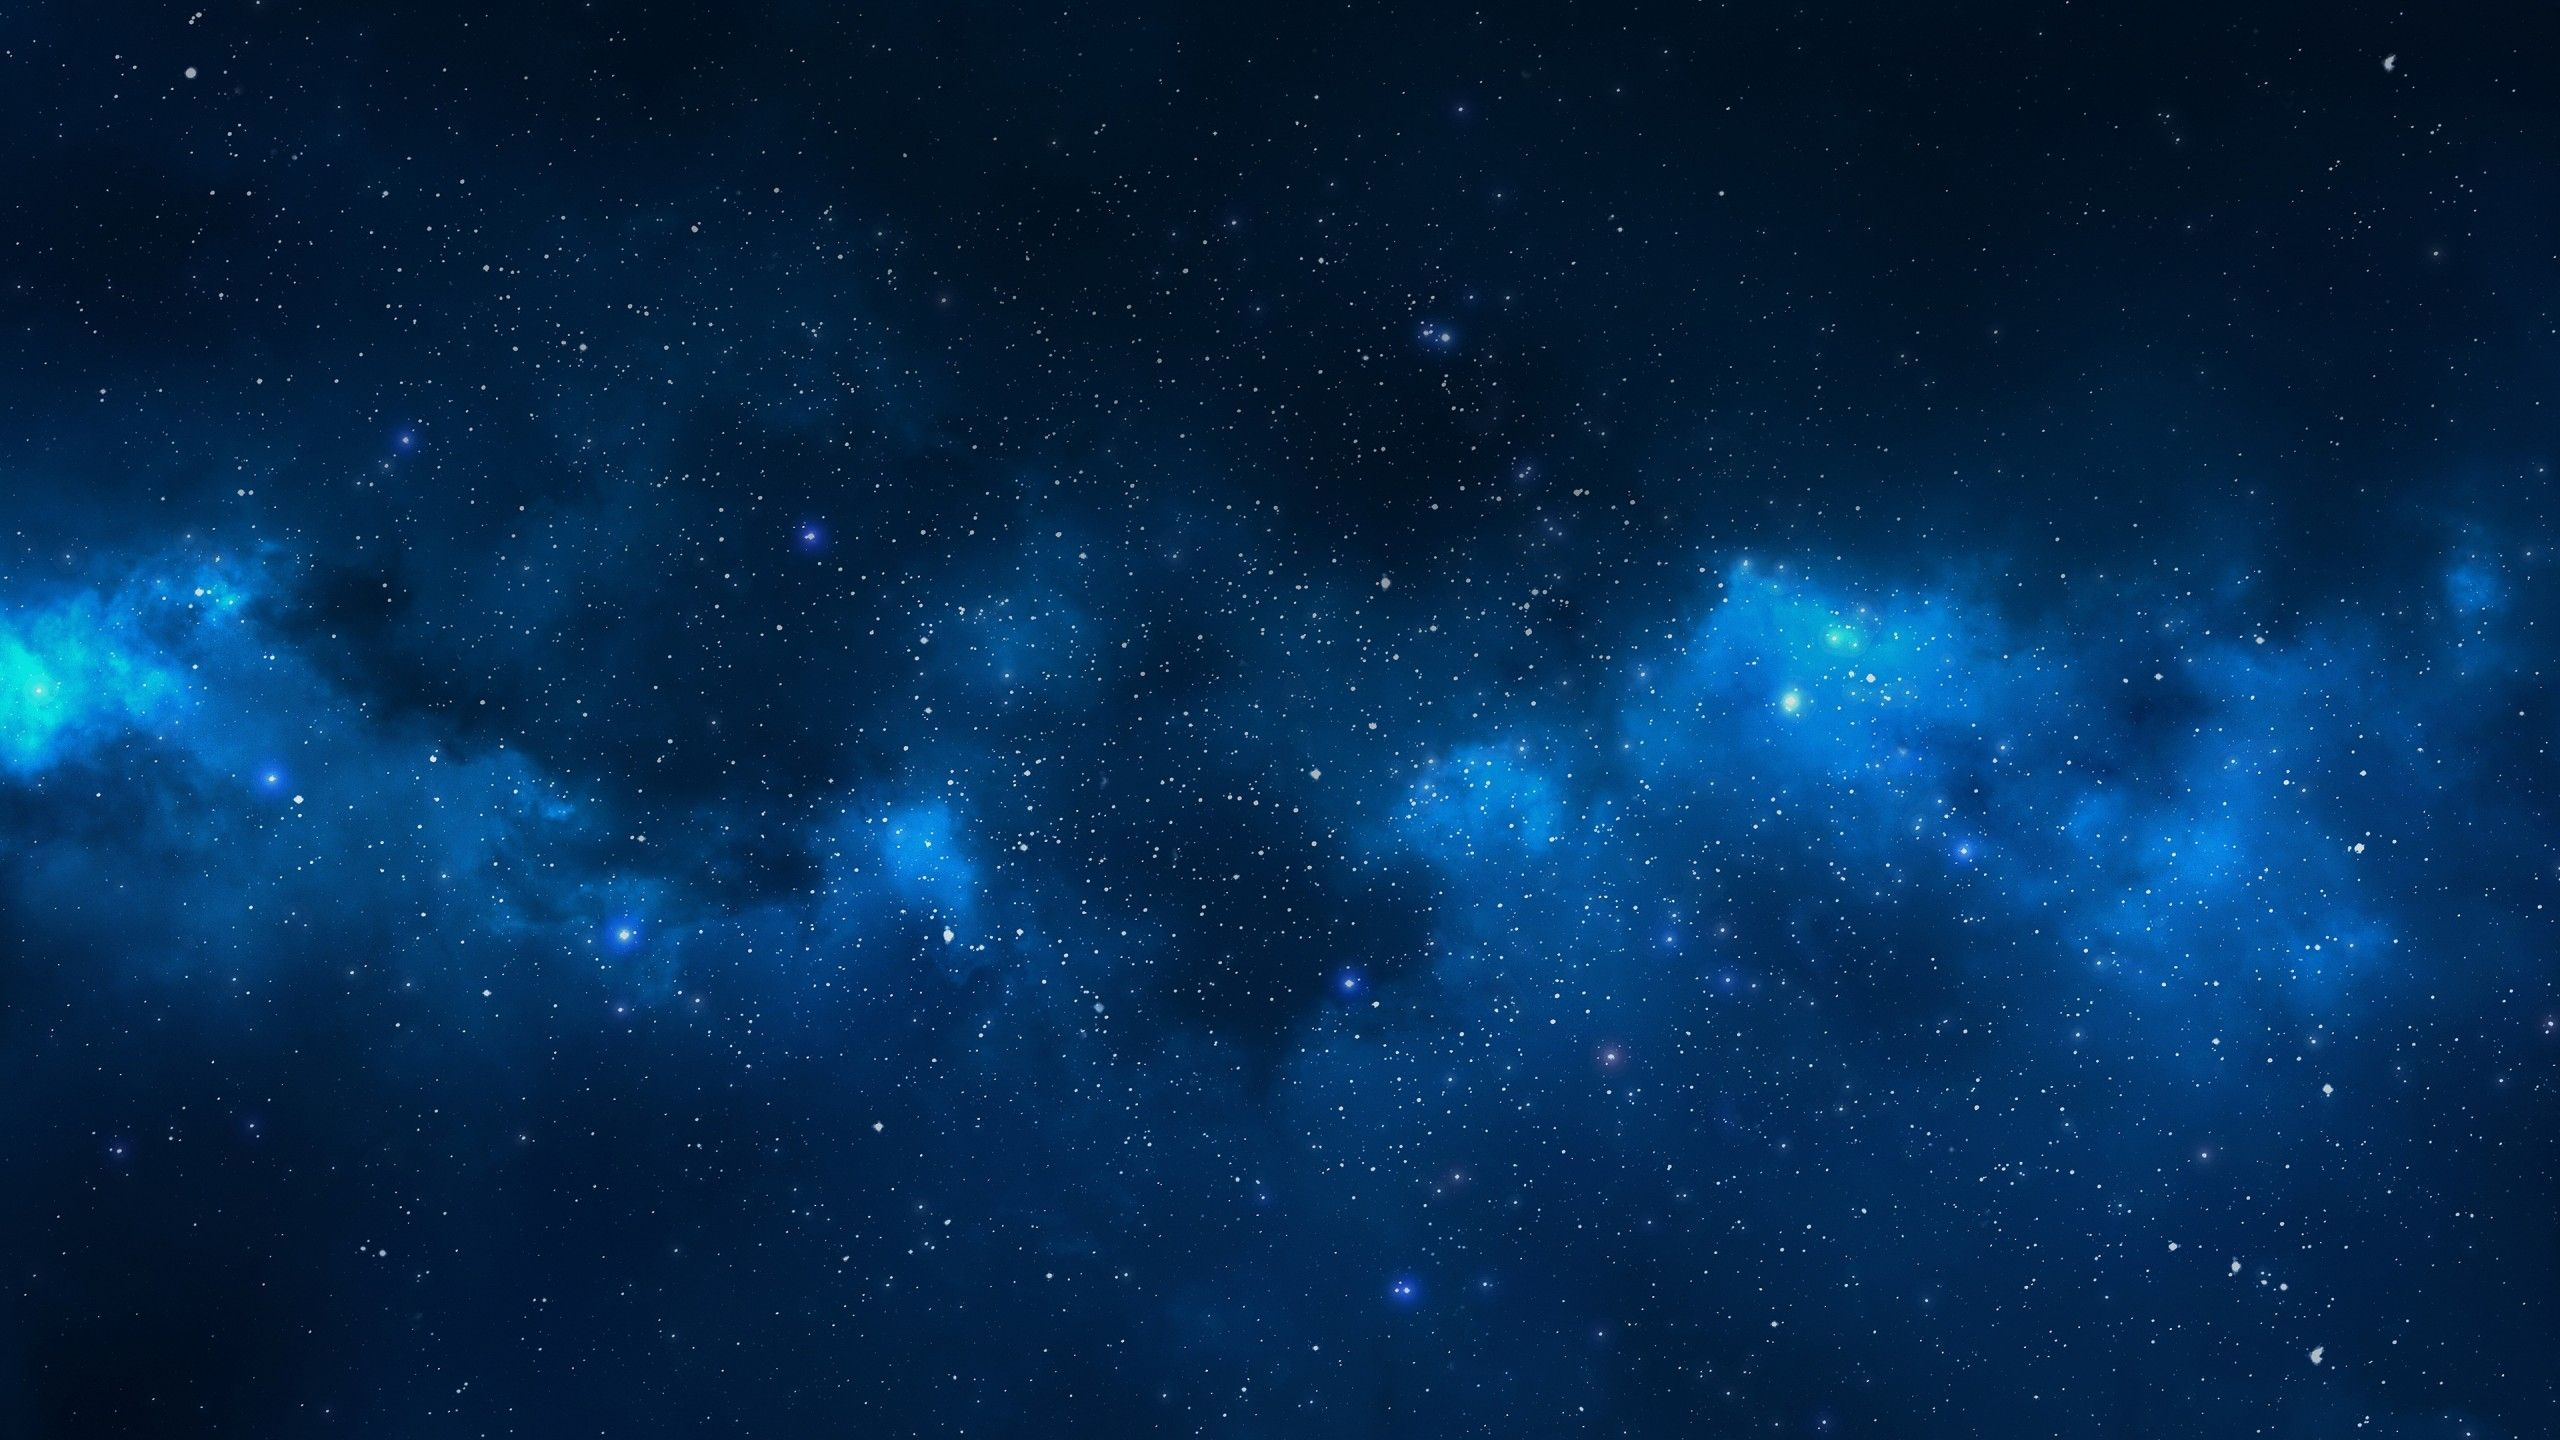 10 Latest 4k Wallpaper Galaxy Full Hd 19 1080 For Pc Background Computer Wallpaper Hd Galaxy Wallpaper Blue Galaxy Wallpaper